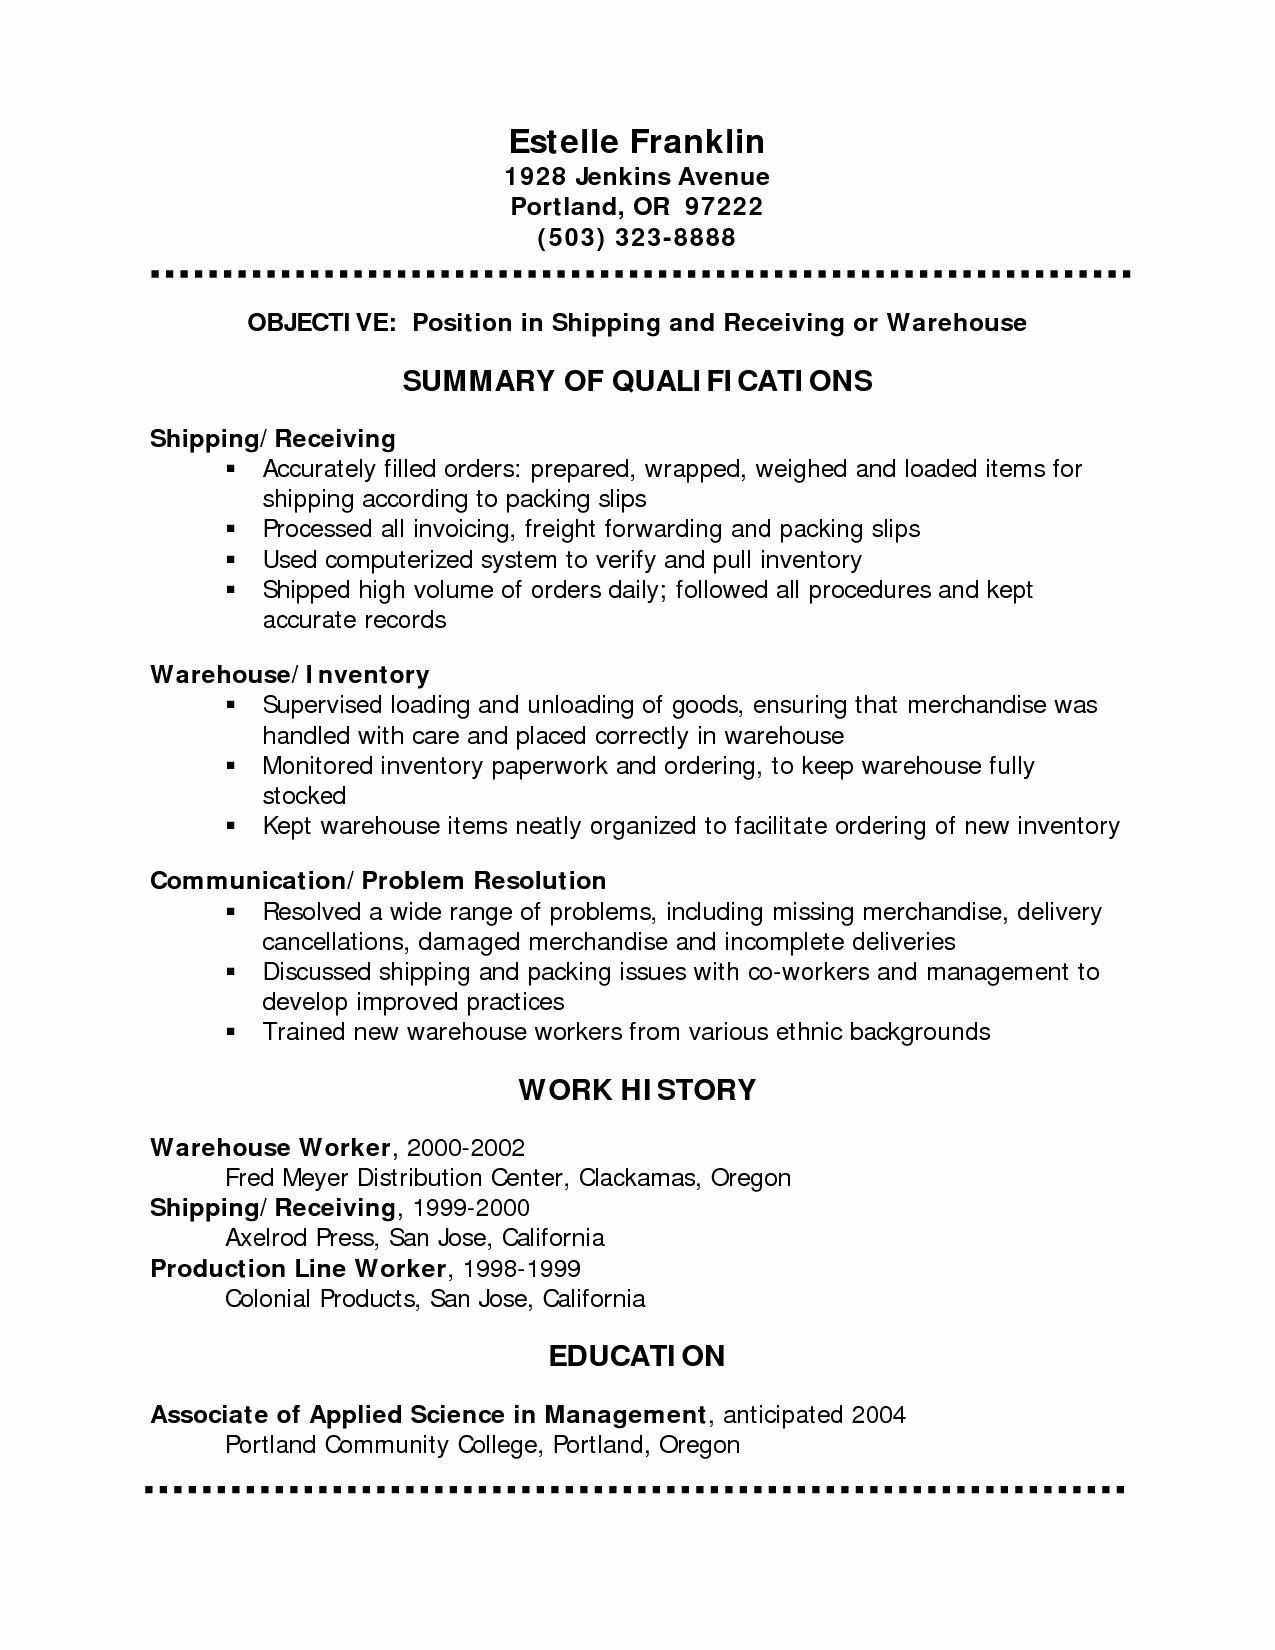 Simple Resume Examples for Jobs Lovely Basic Resume Outline Template